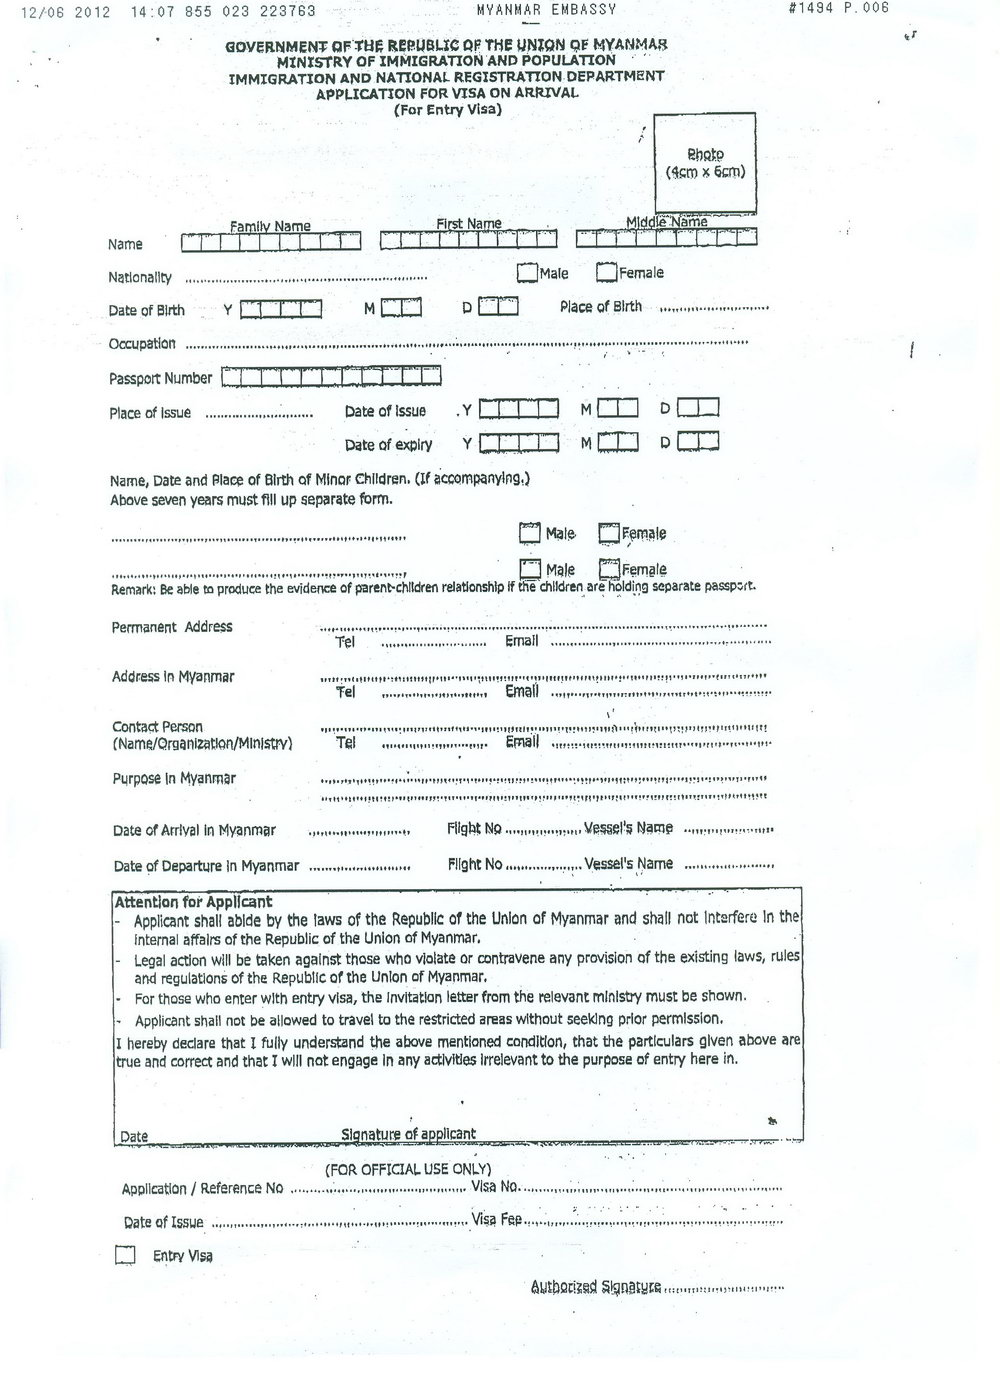 Myanmar Visa Application Form Sri Lanka